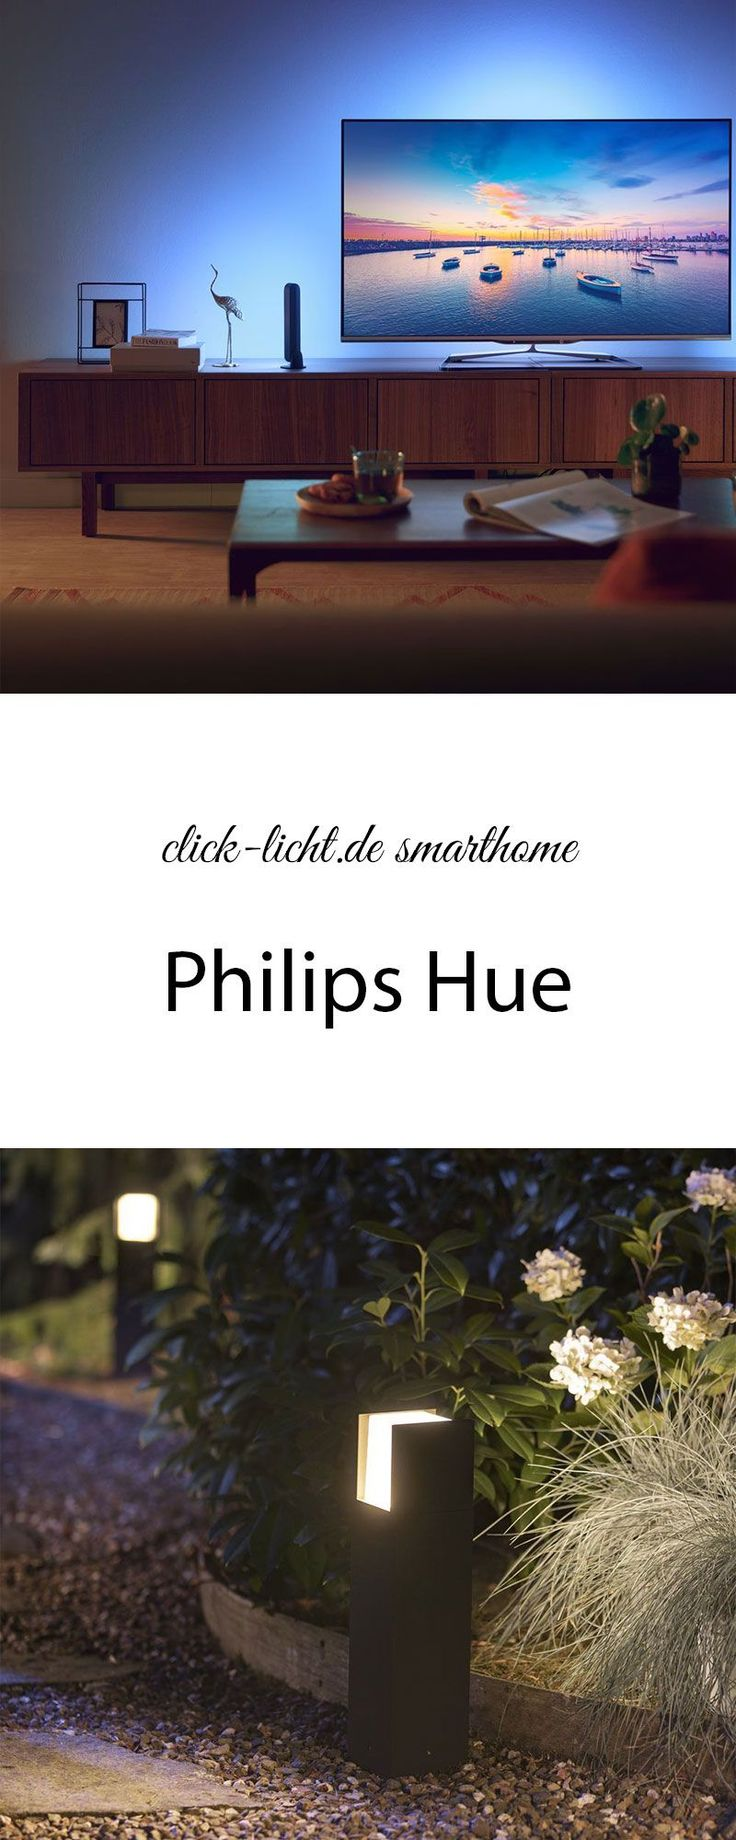 Philips Hue Schlafzimmer Lampe